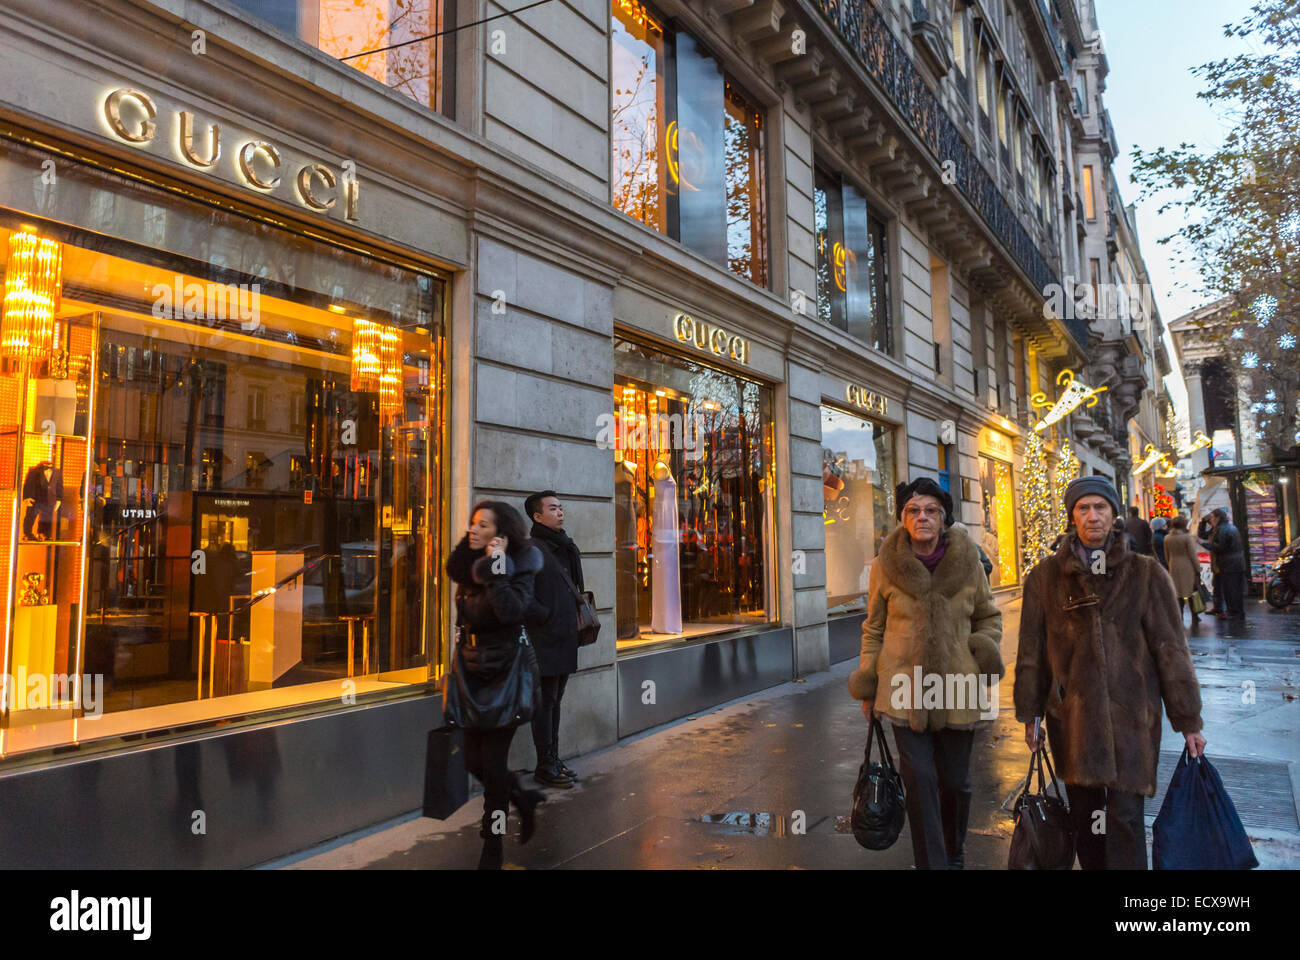 paris stra e menschen au en nacht luxus schaufensterbummel gesch fte modemarke gucci store. Black Bedroom Furniture Sets. Home Design Ideas